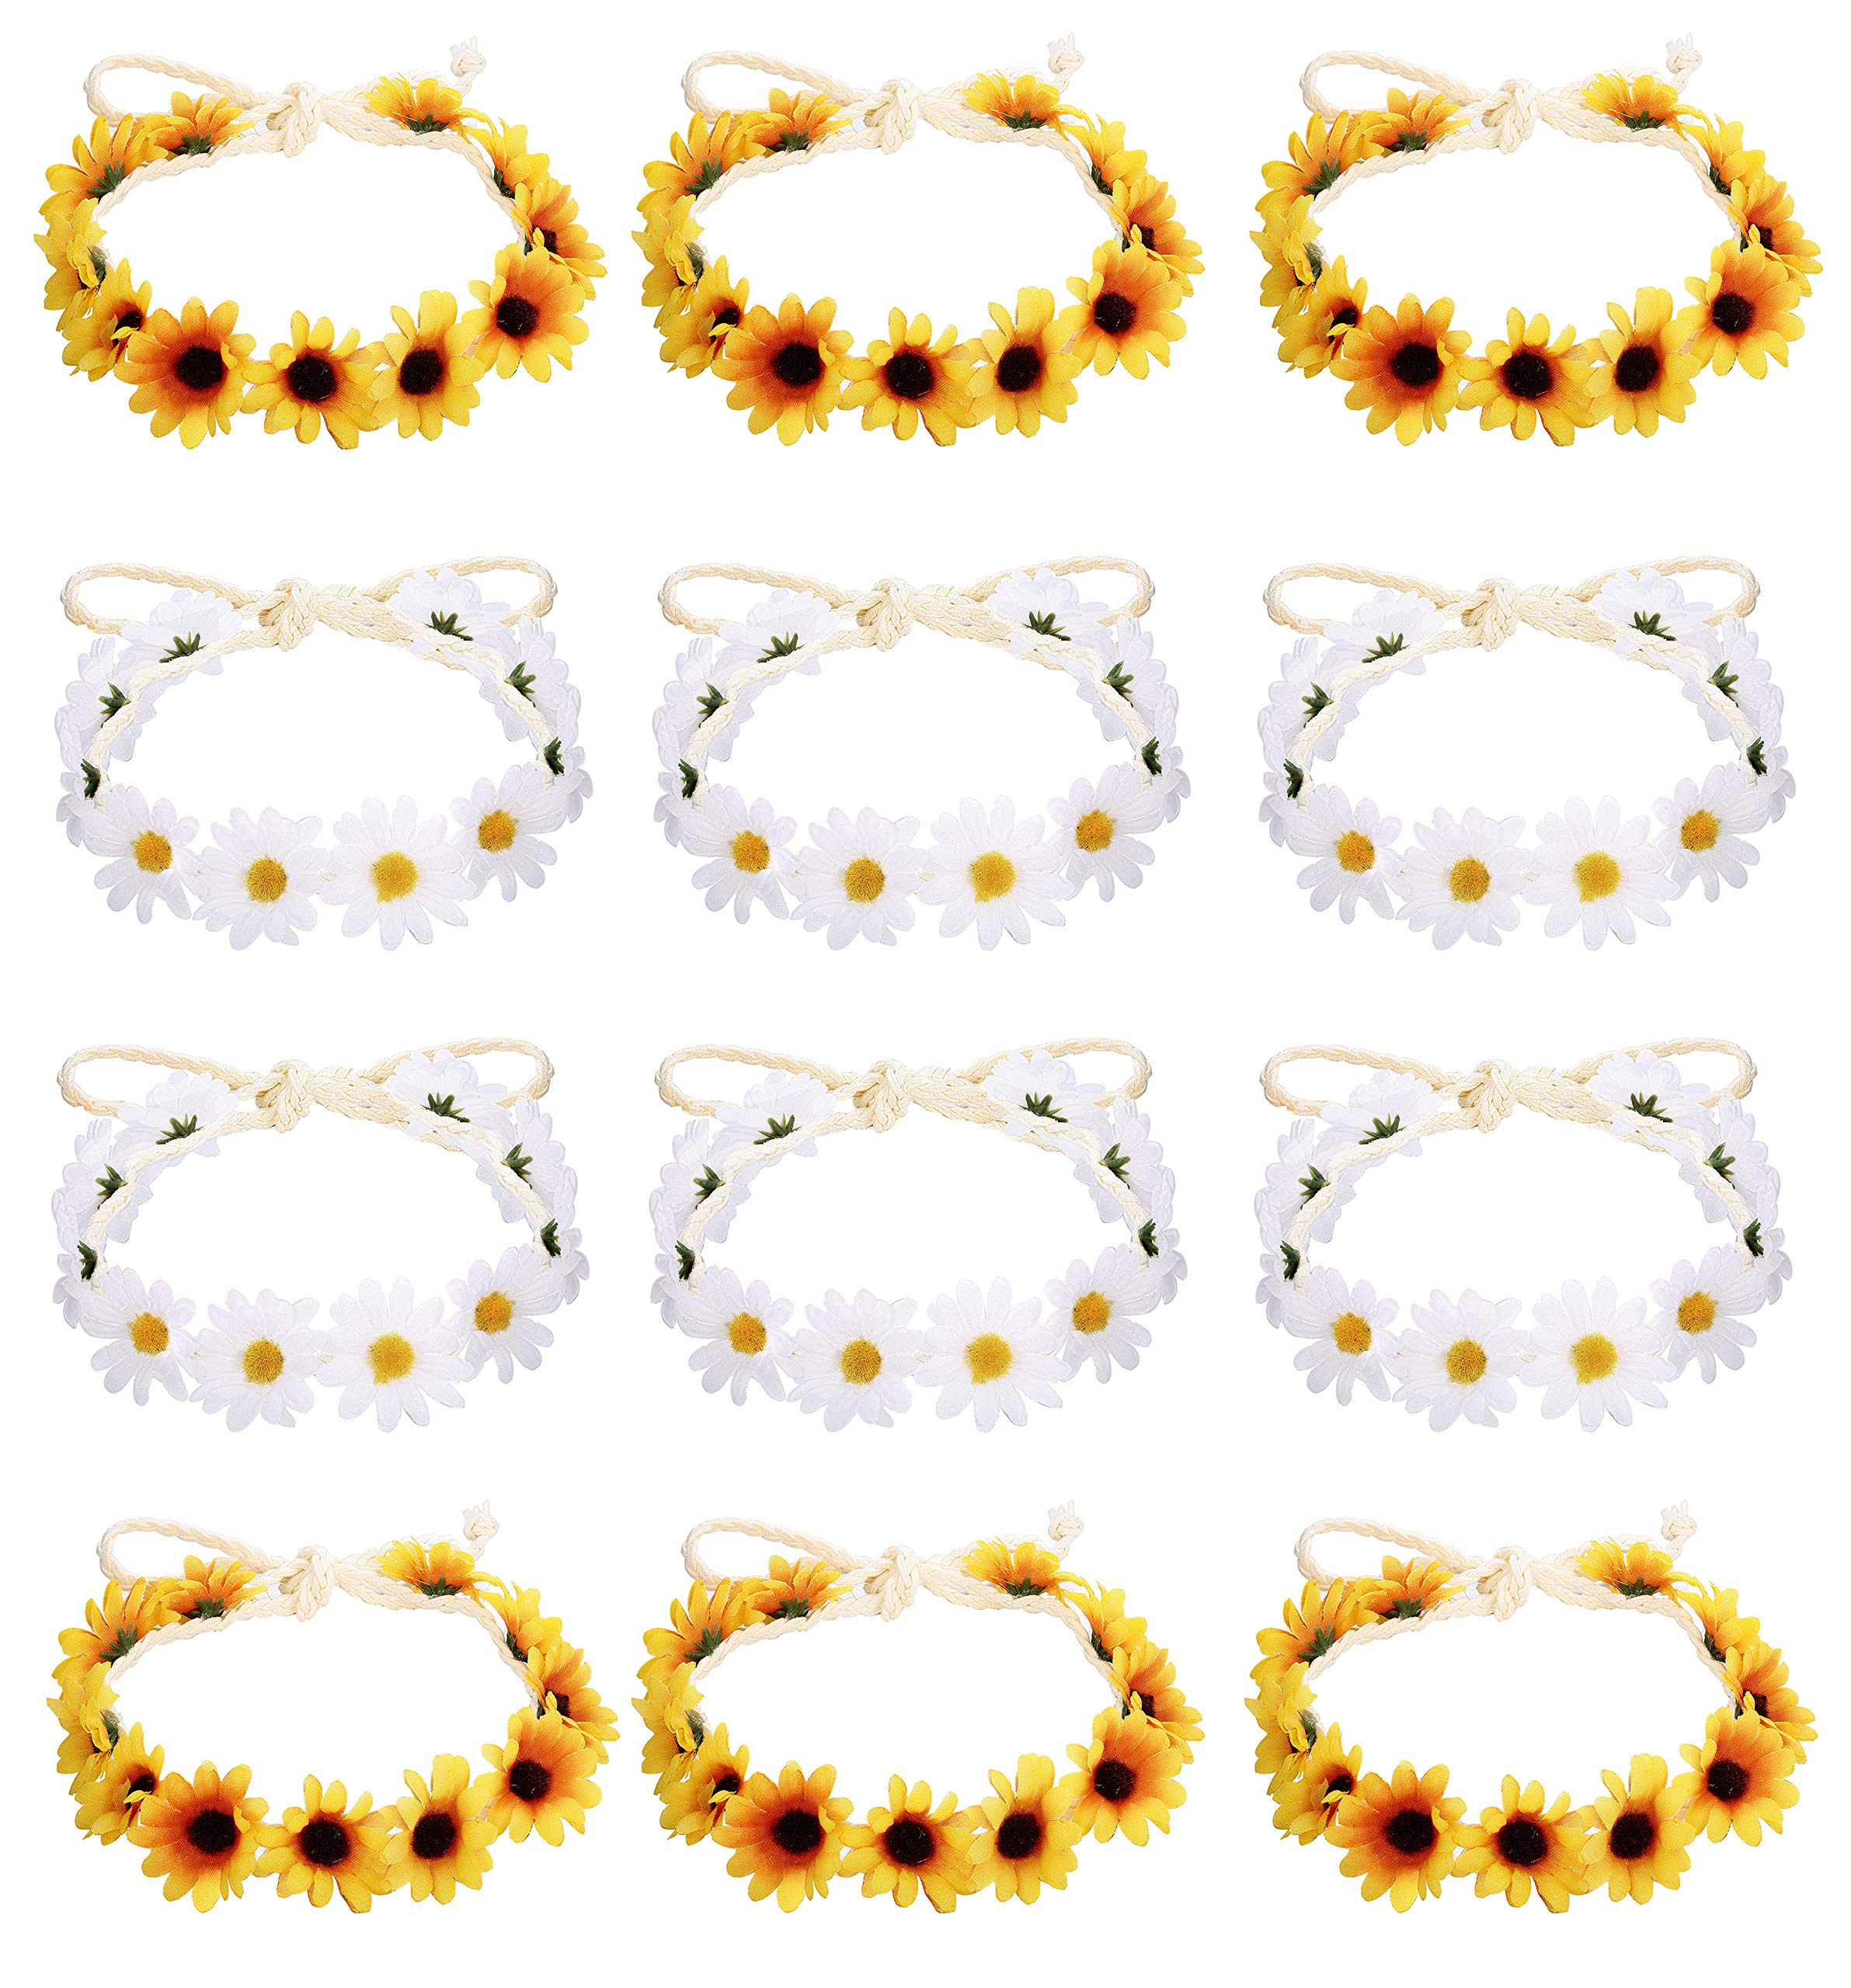 Milacolato 6-12Pcs Handmade Daisies Sunflower Headband Boho Floral Wreath Bridal Headpiece for Wedding Festivals Hair Accessories White&Yellow